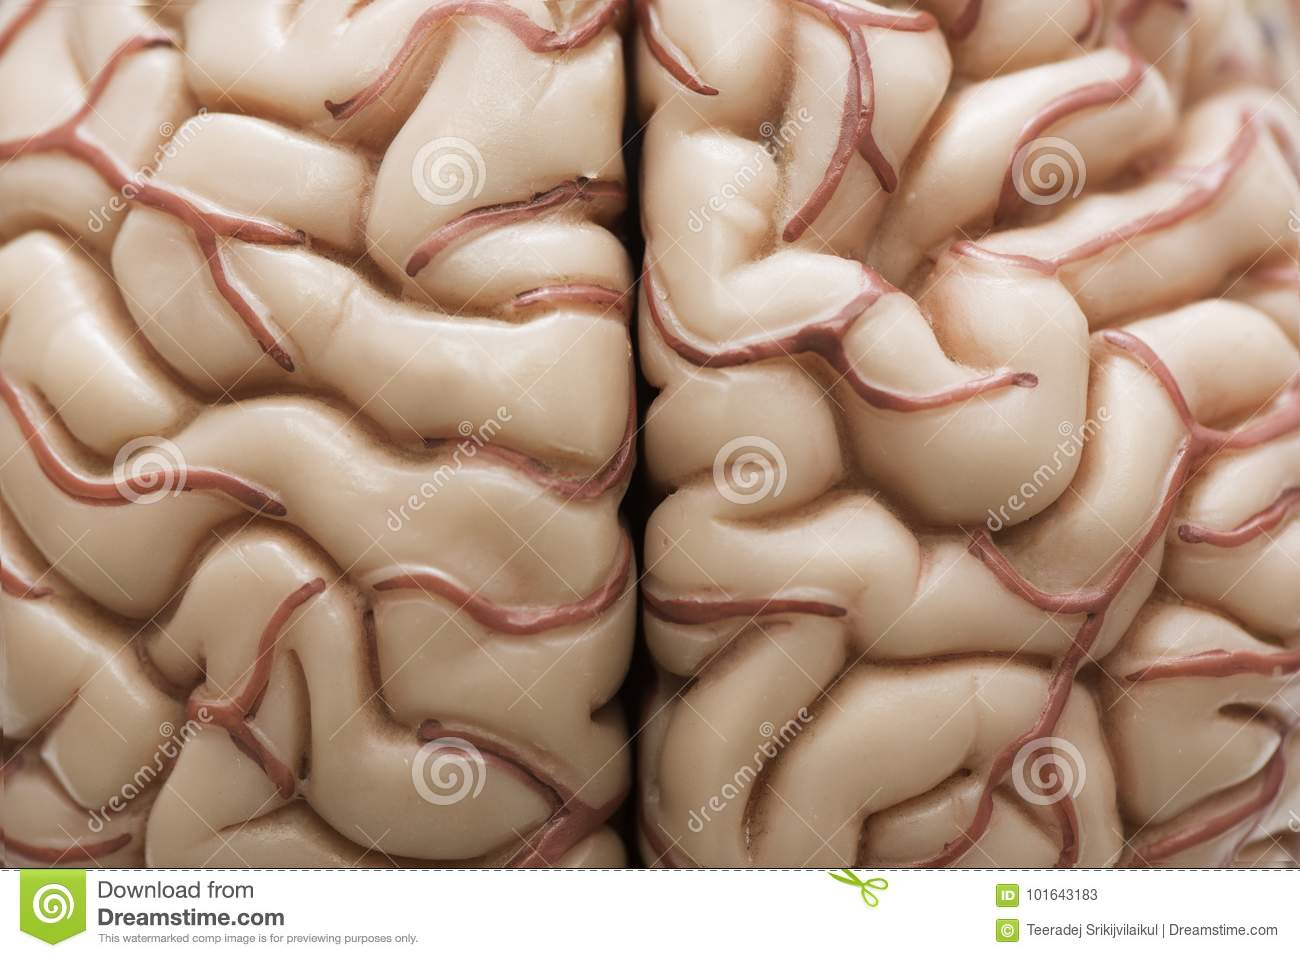 Human brain model stock image. Image of biology, anatomy - 101643183